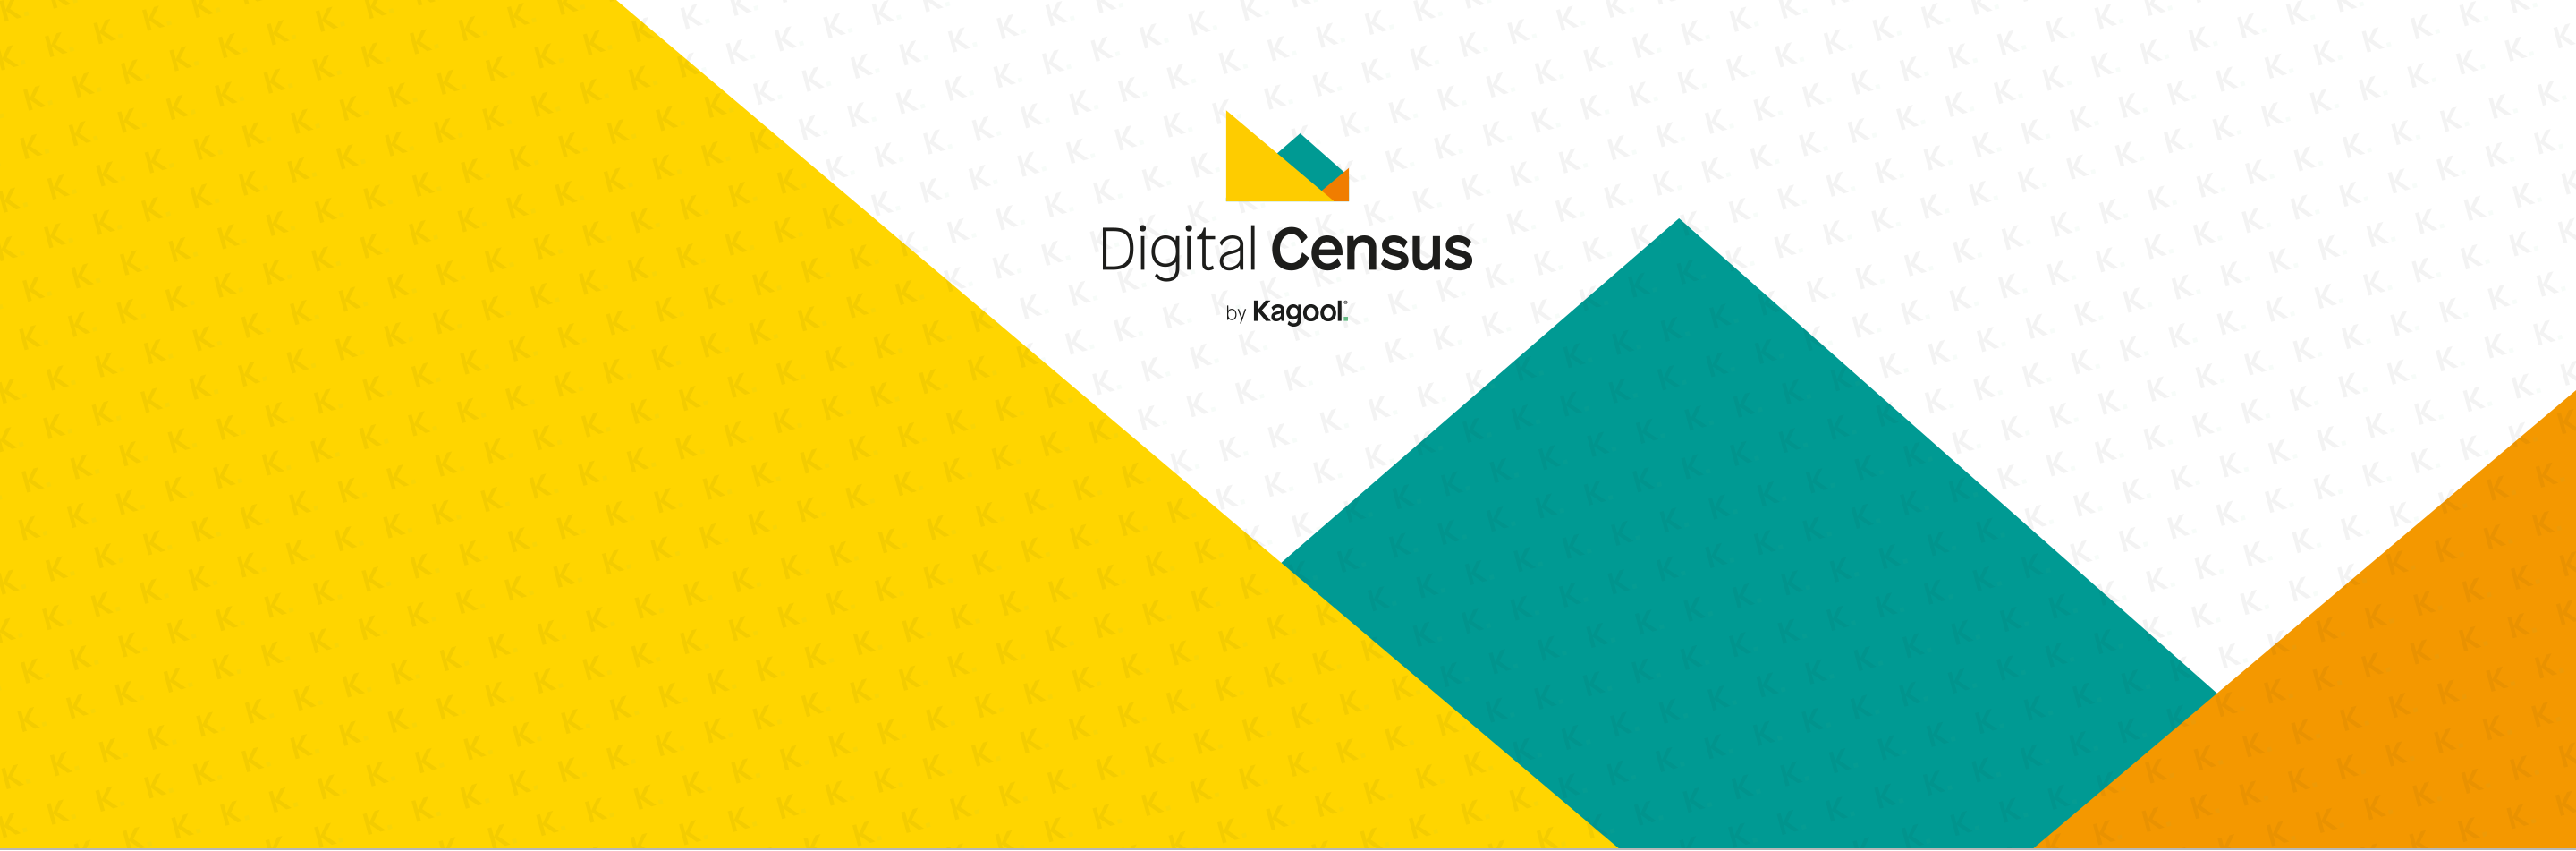 Digital Census Hub Header.png